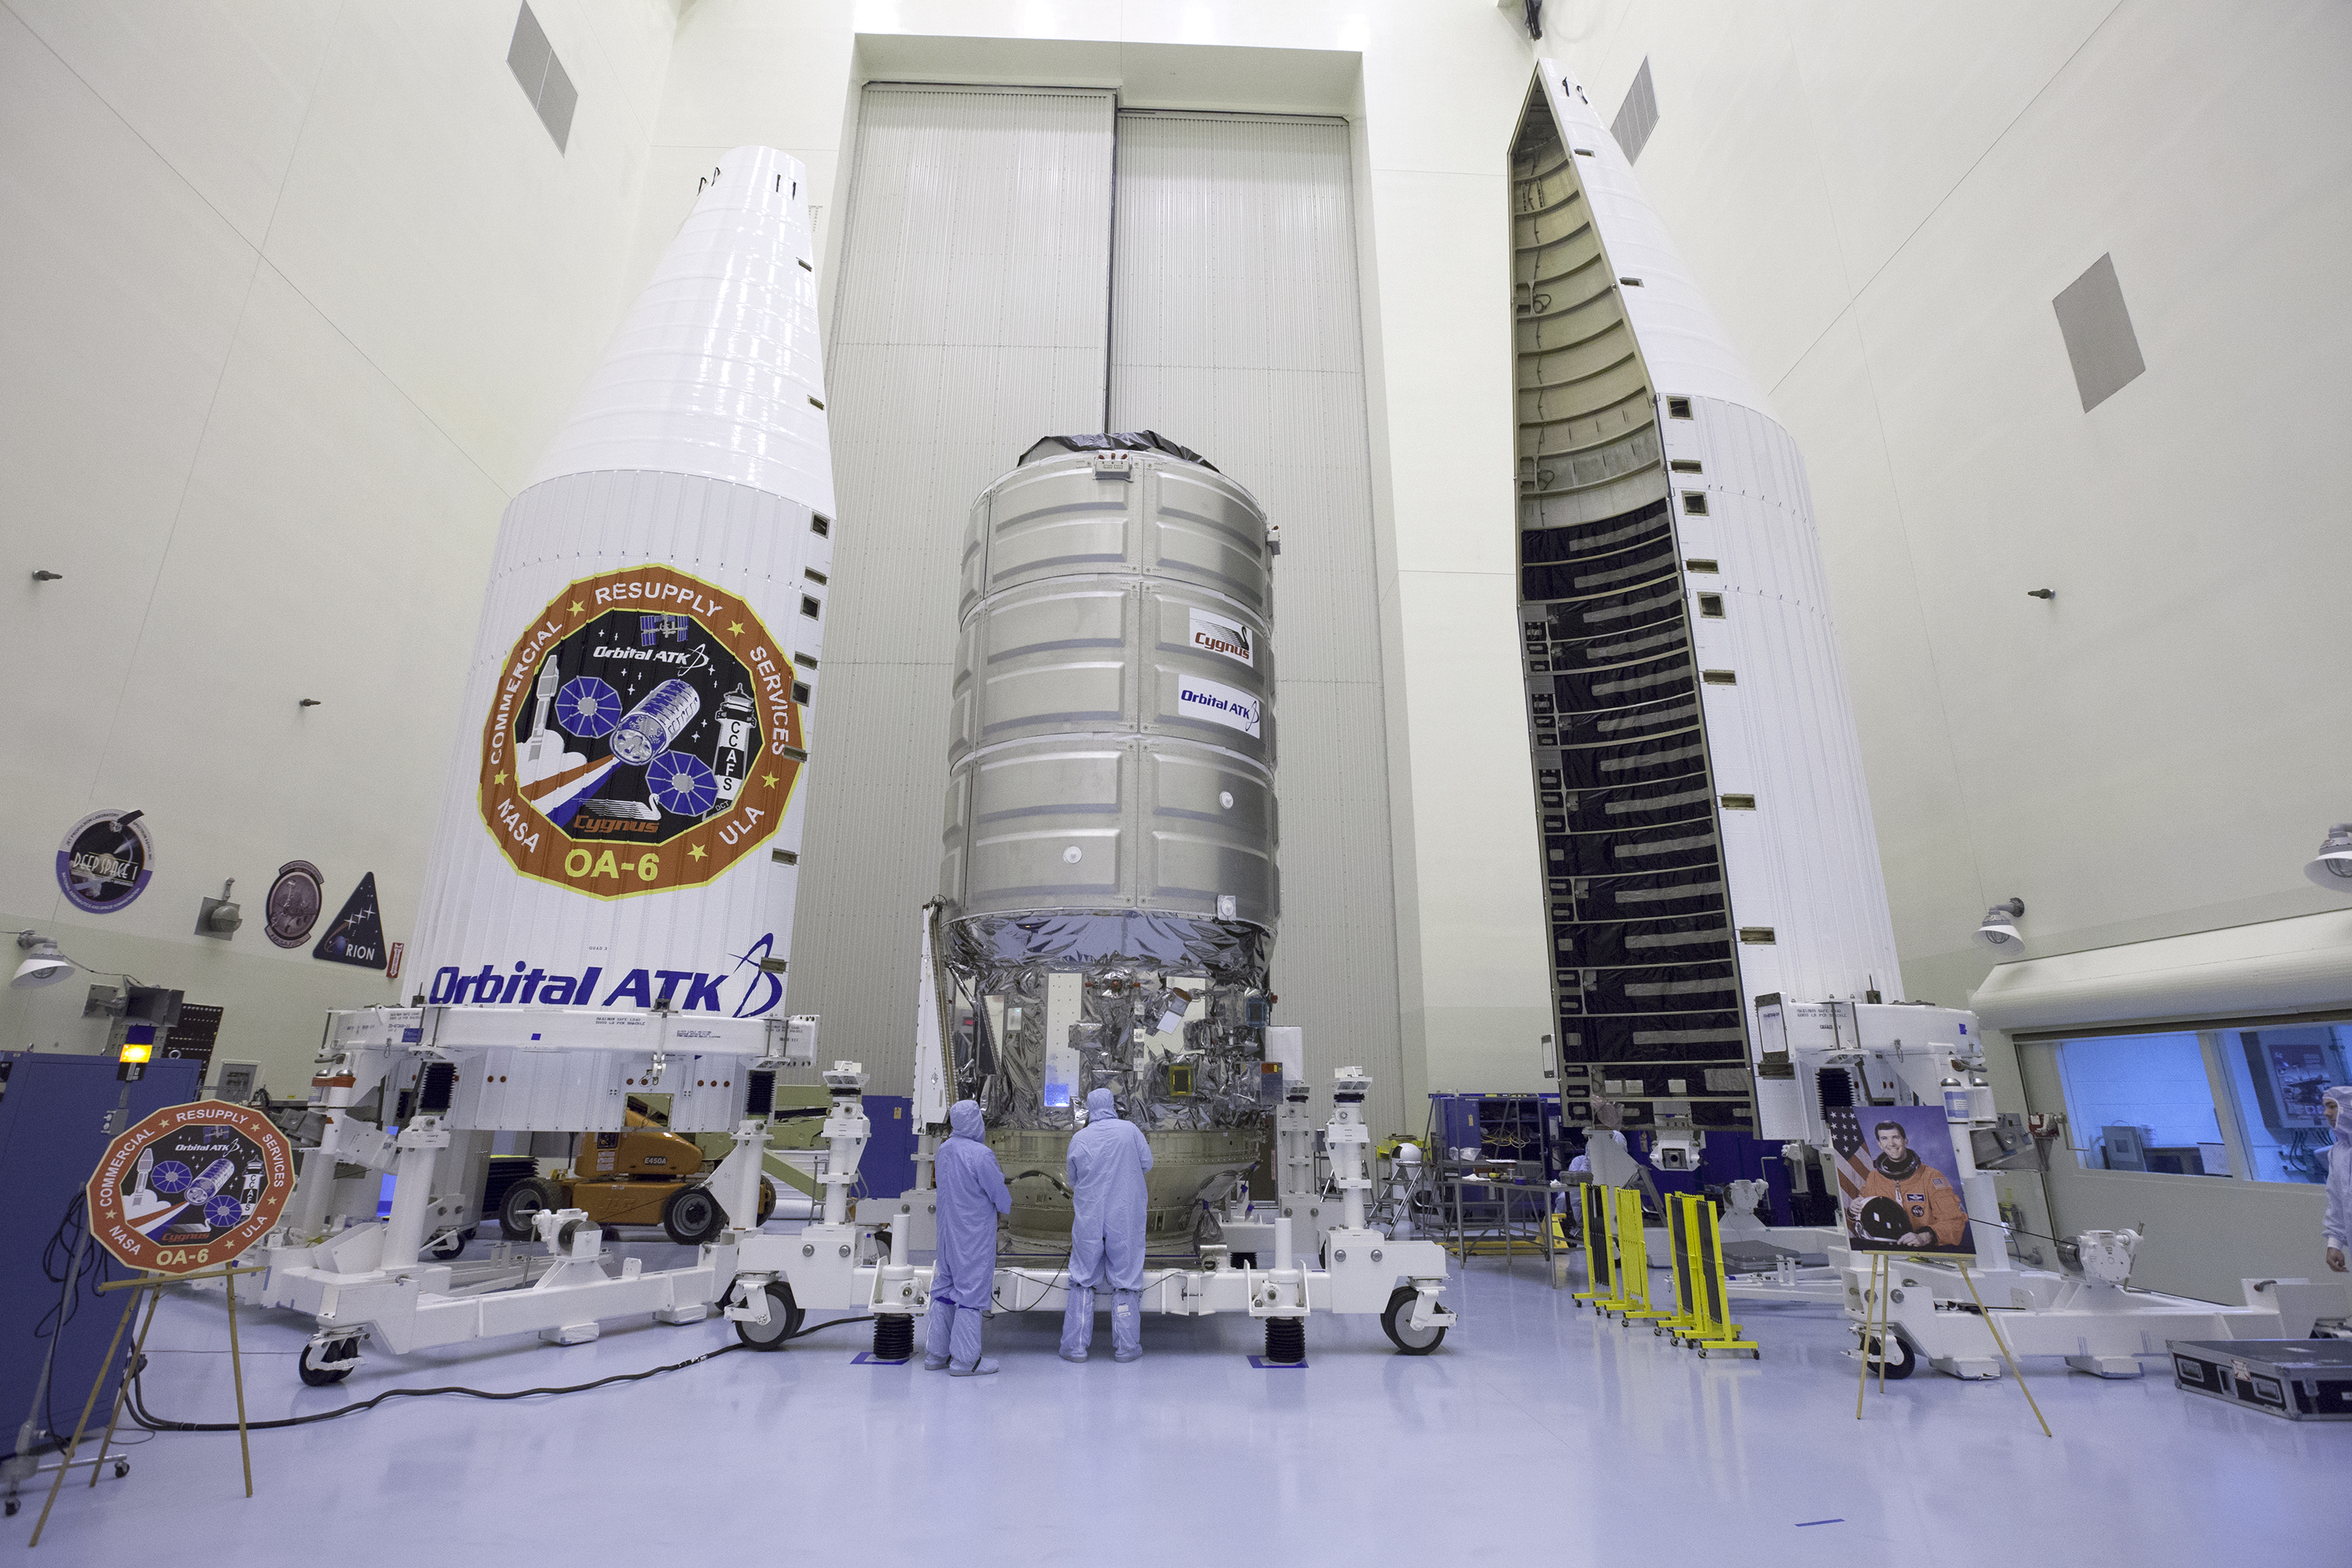 An Orbital ATK Cygnus cargo ship is packed inside its protective nose cone fairing for a planned March 22, 2016 launch atop an Atlas V rocket from Florida's Cape Canaveral Air Force Station. The Cygnus is carrying 3.5 tons of supplies for the Internationa